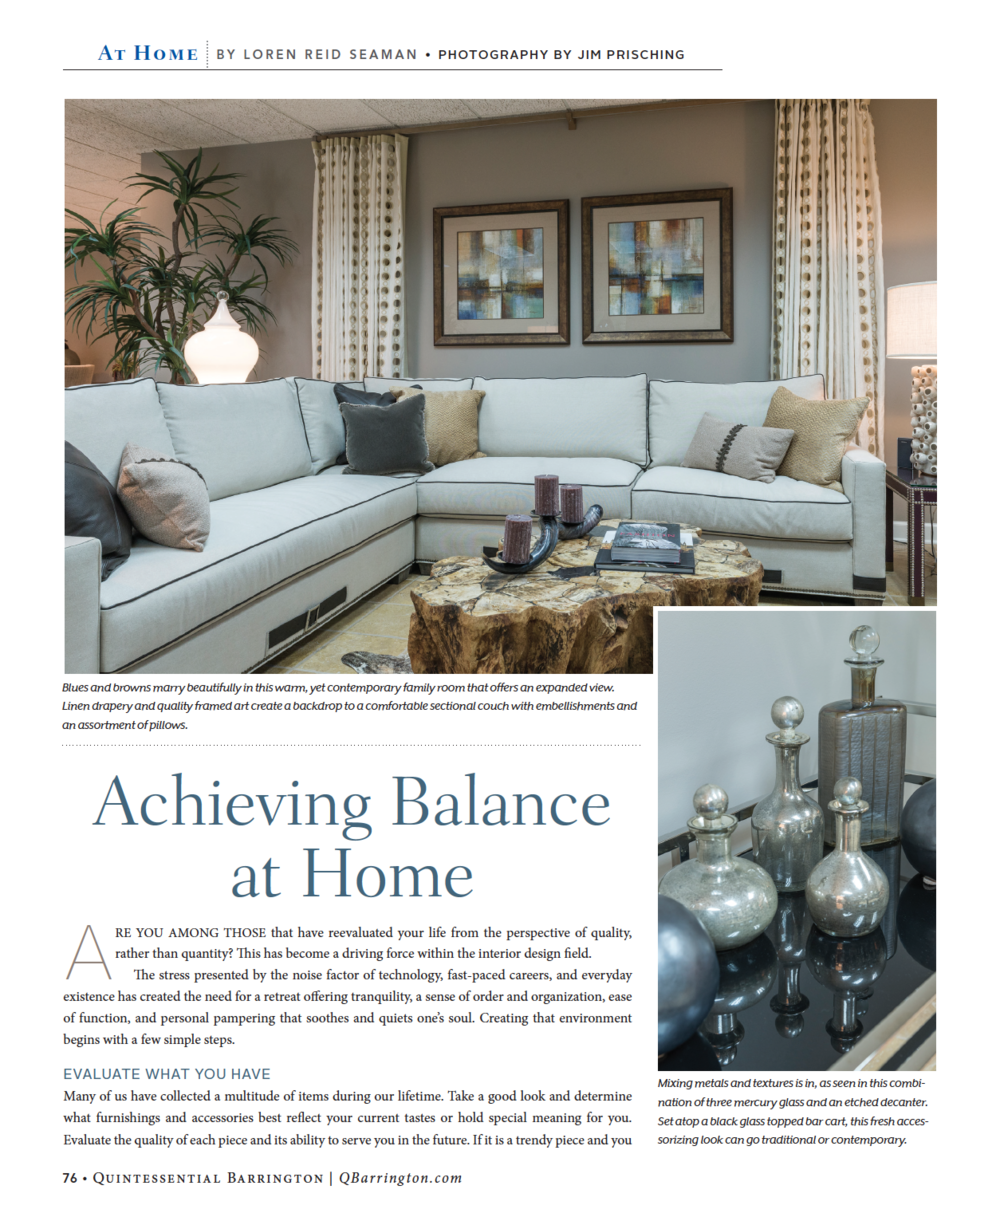 Quintessential Barrington Magazine Featured LRS Interiors With This At Home  Article.